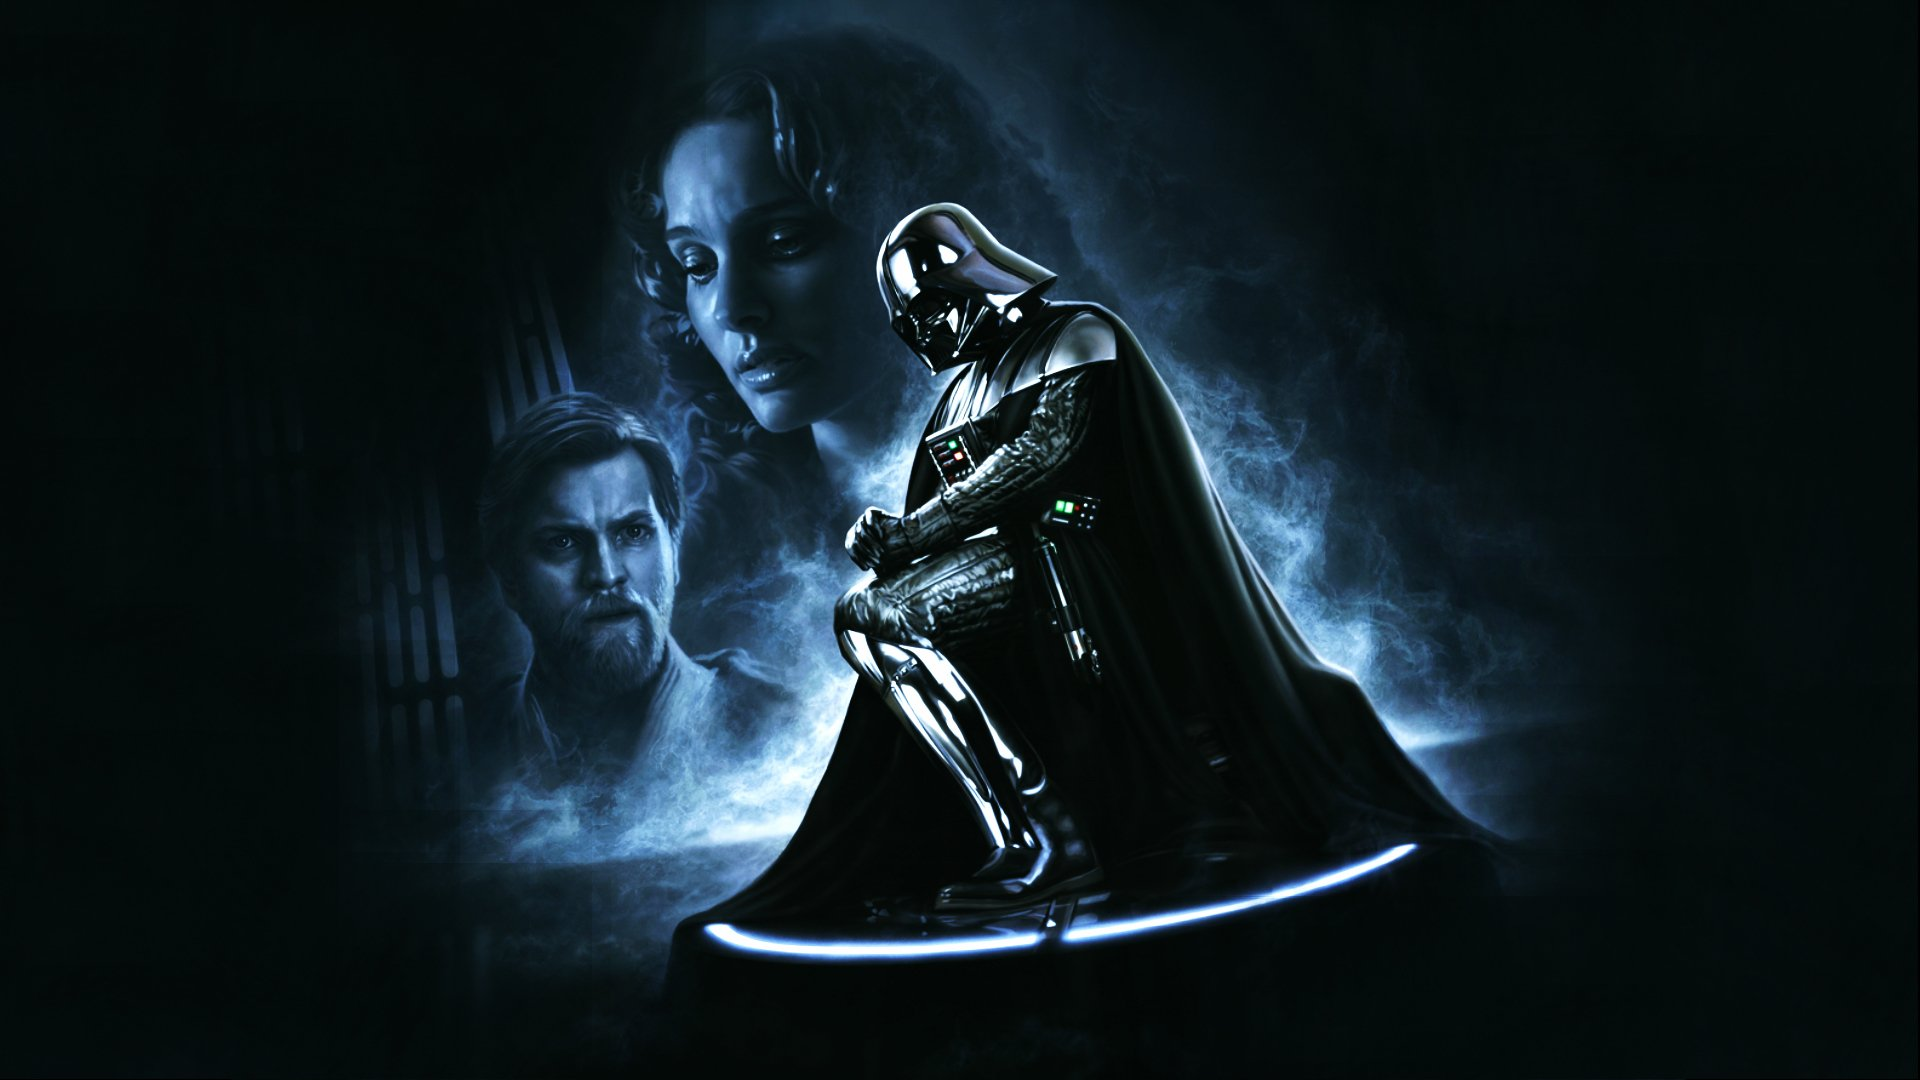 334 Darth Vader Hd Wallpapers Background Images